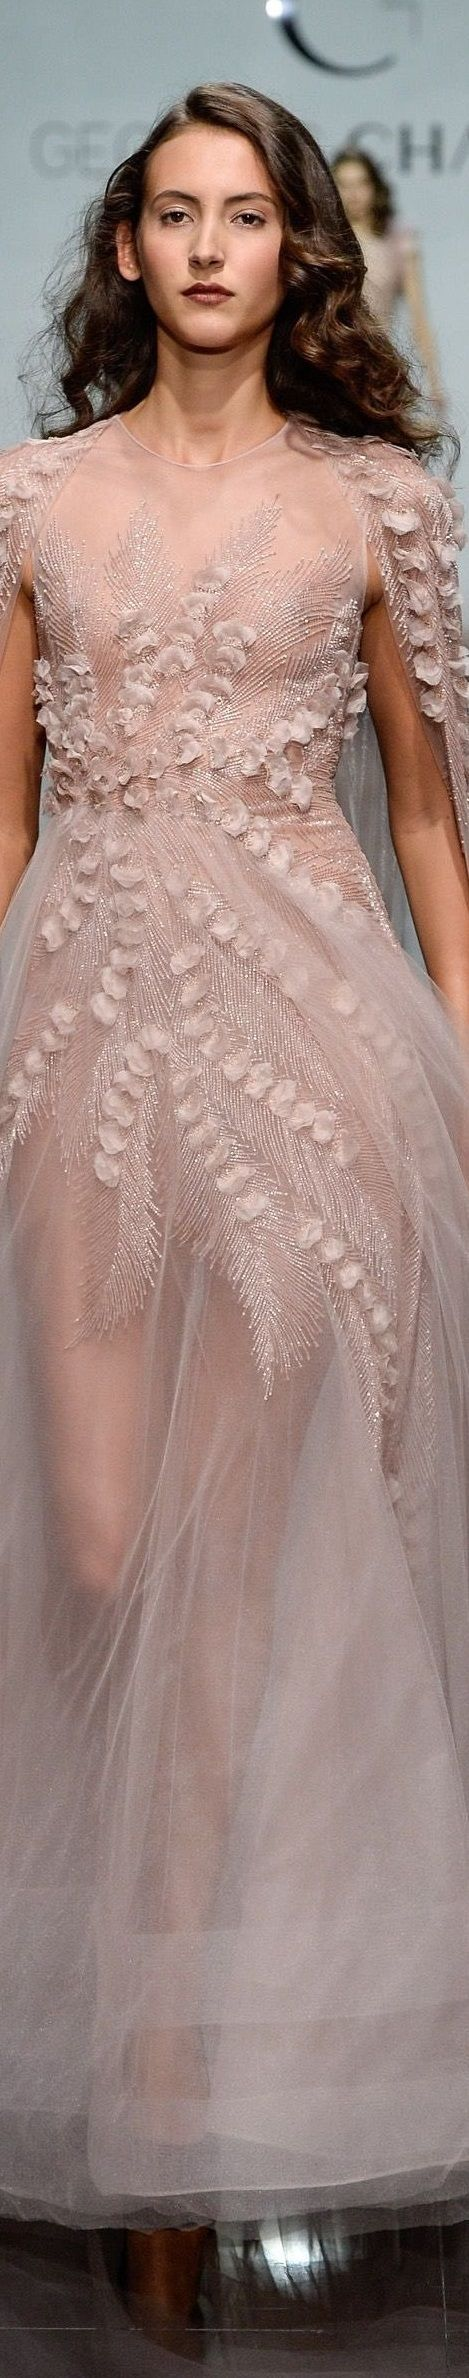 Georges Chakra fall 2016 couture                                                                                                                                                                                 More